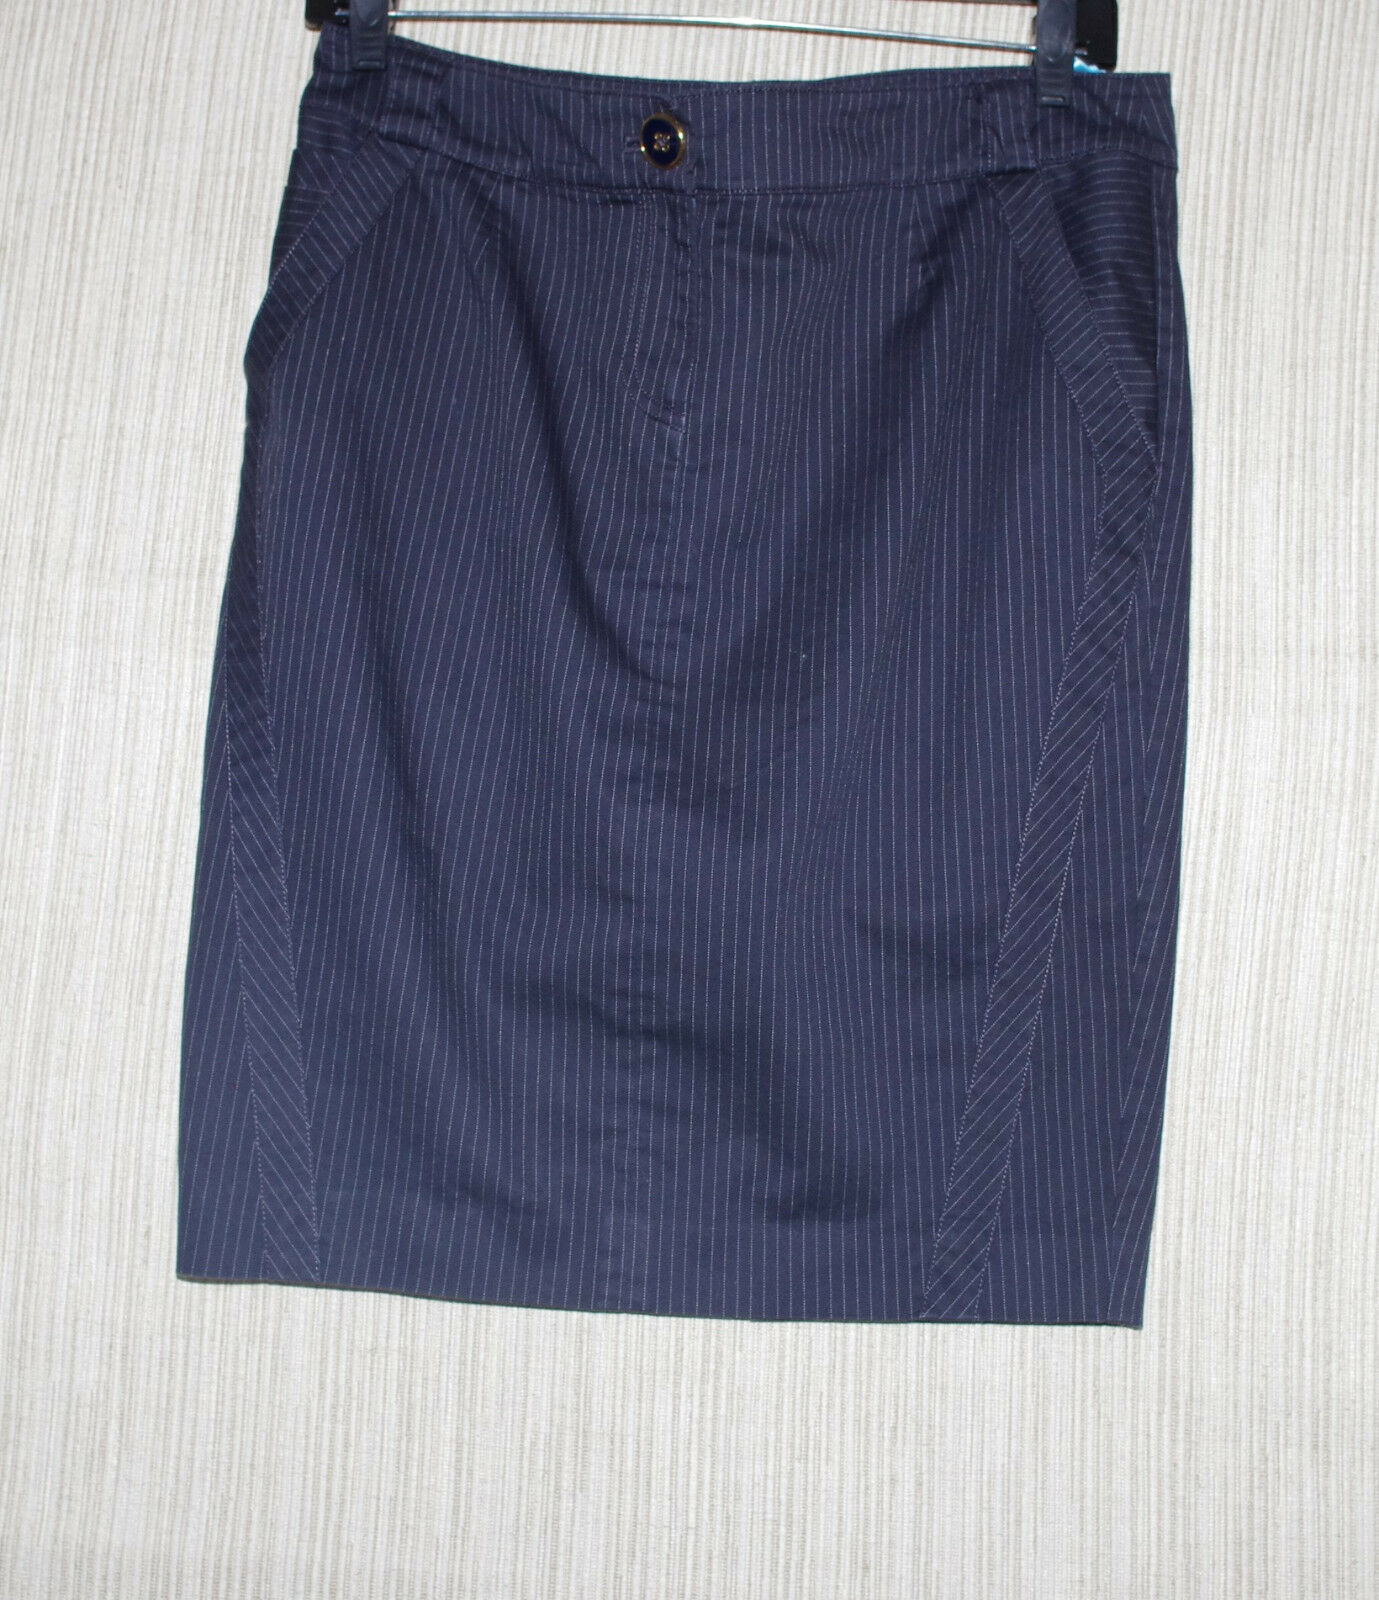 Marciano Cotton Blend bluee Stripe Pencil Skirt Size 6